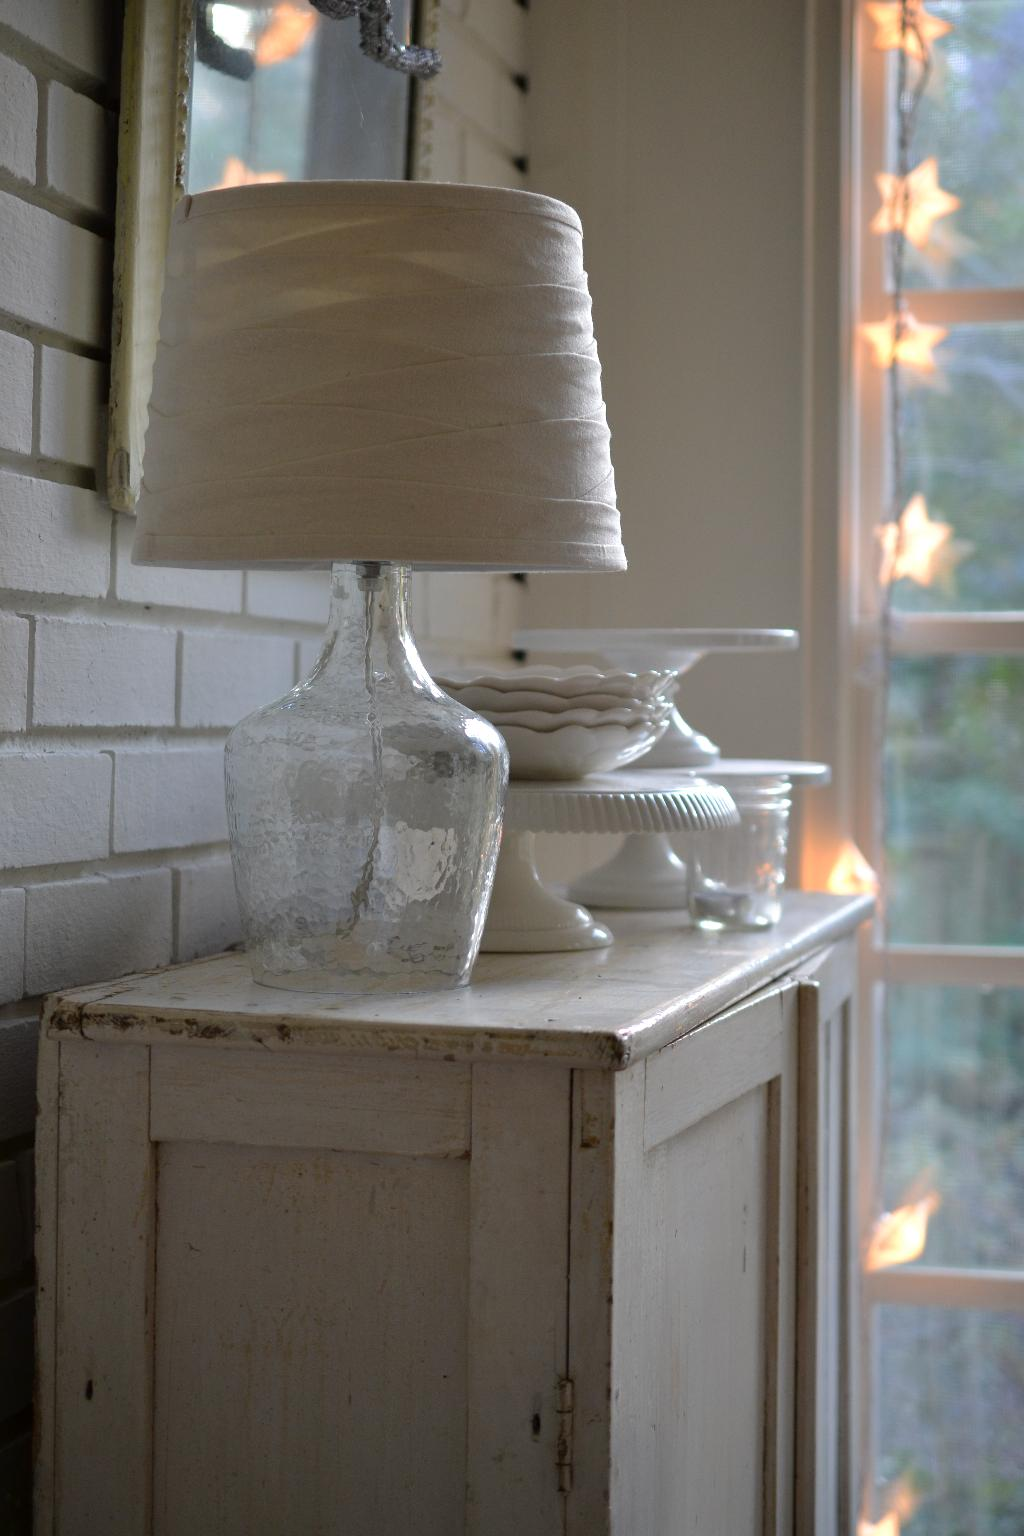 Cottage Fix - cupboard with white cake plates and lamp